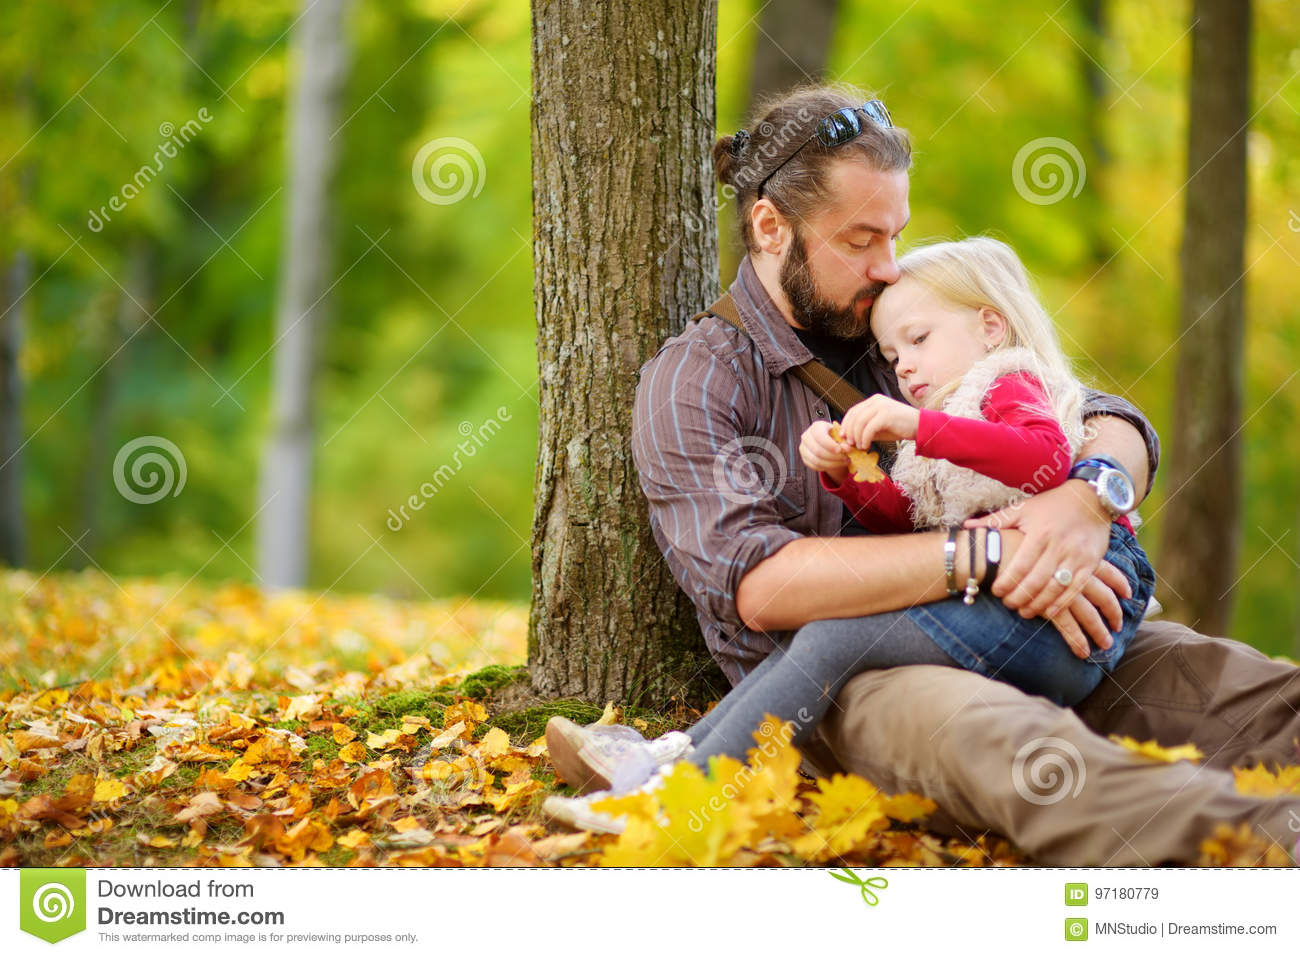 Cute little girl and her father having fun on beautiful autumn day. Happy child playing in autumn park. Kid gathering yellow fall